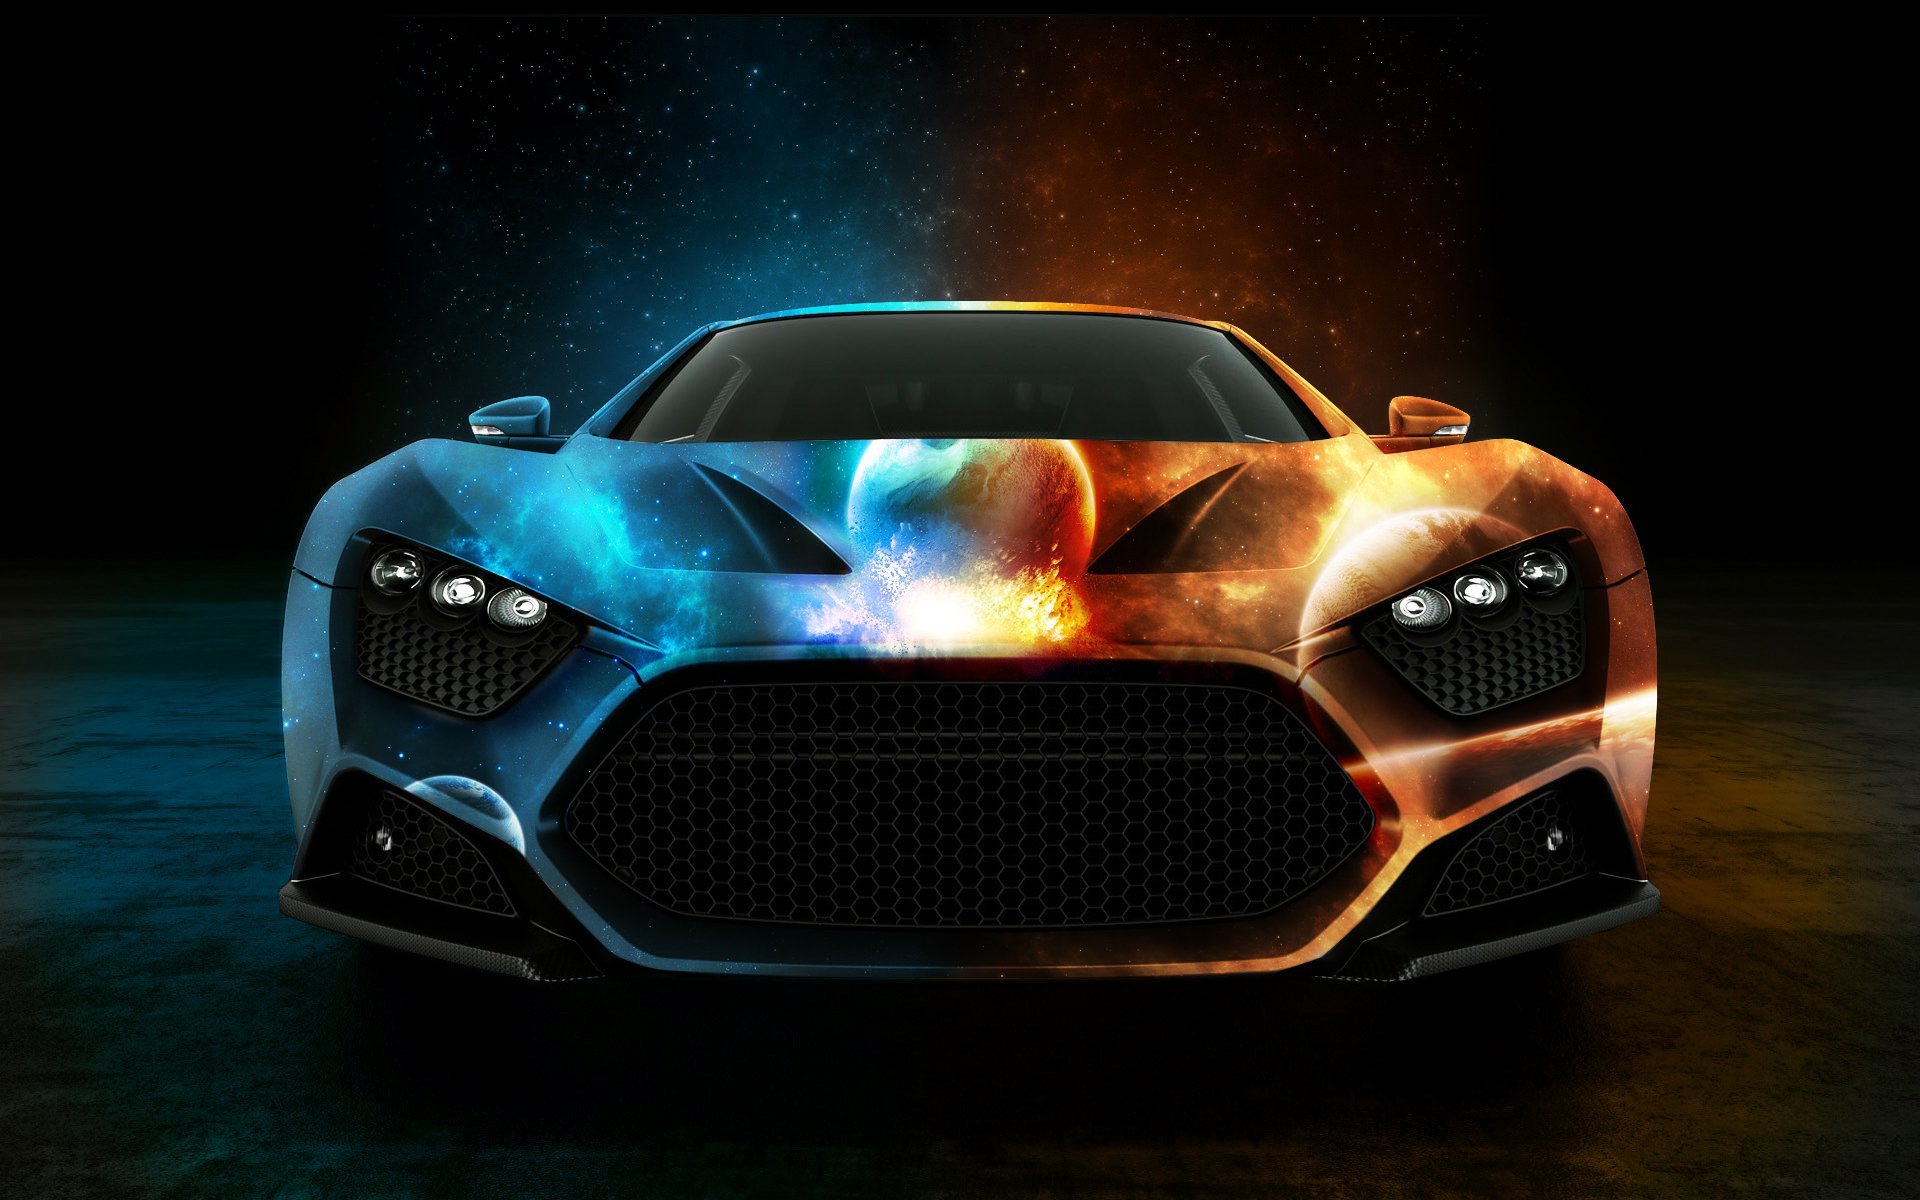 Awesome Car Backgrounds for Pinterest 1920x1200